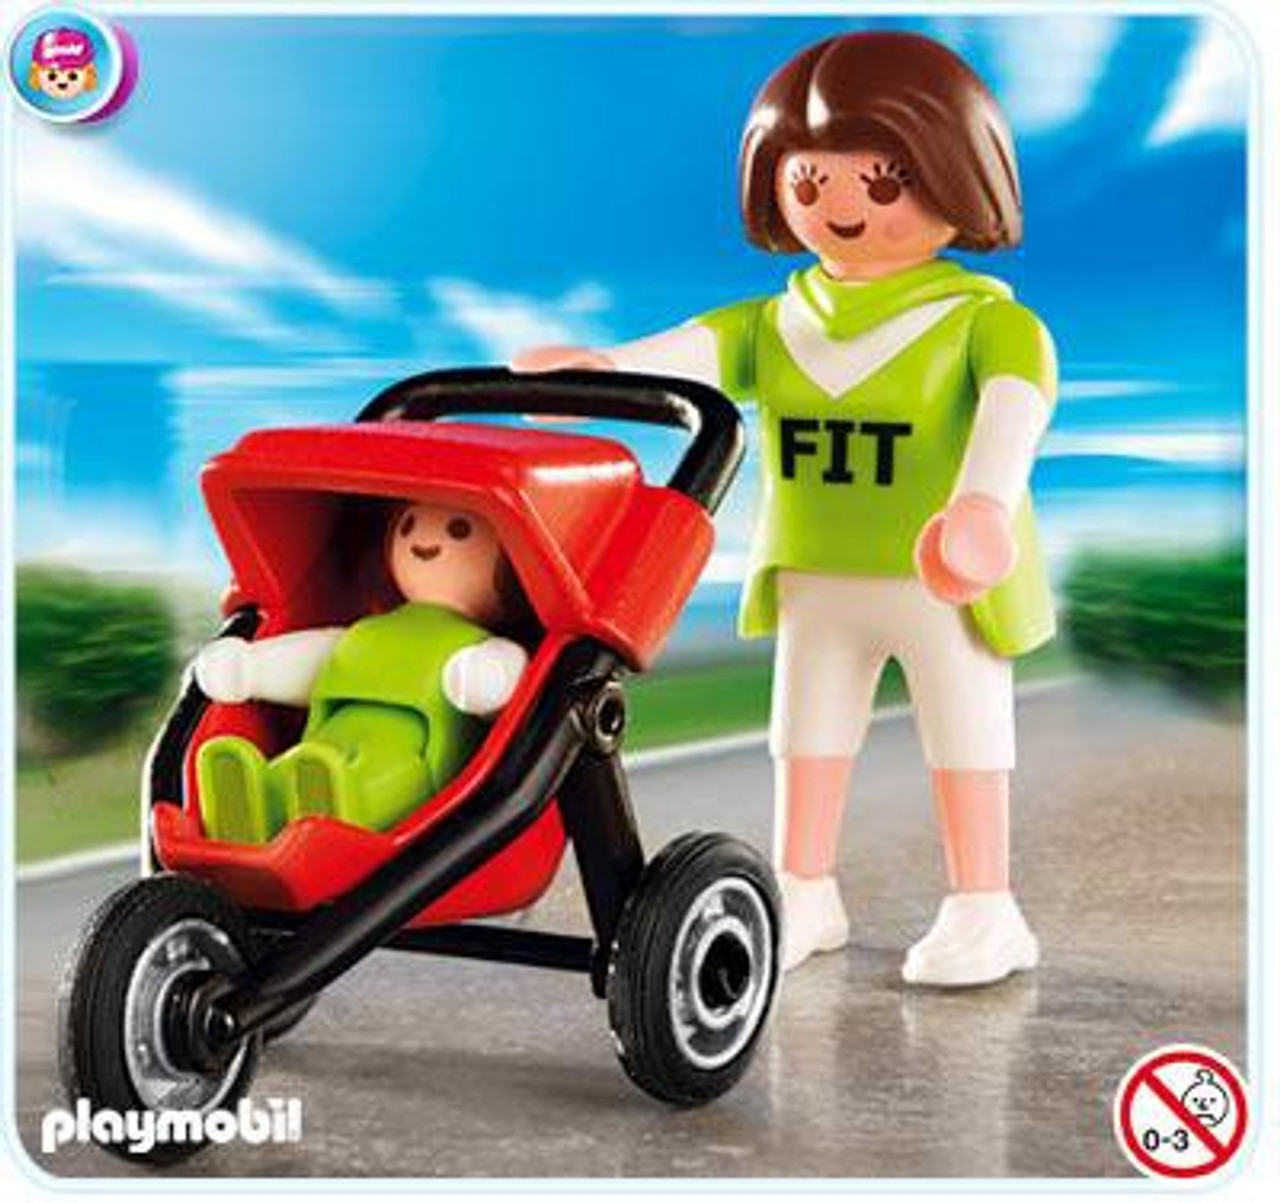 Playmobil Life In The City Mother with Jogging Stroller Set #4697